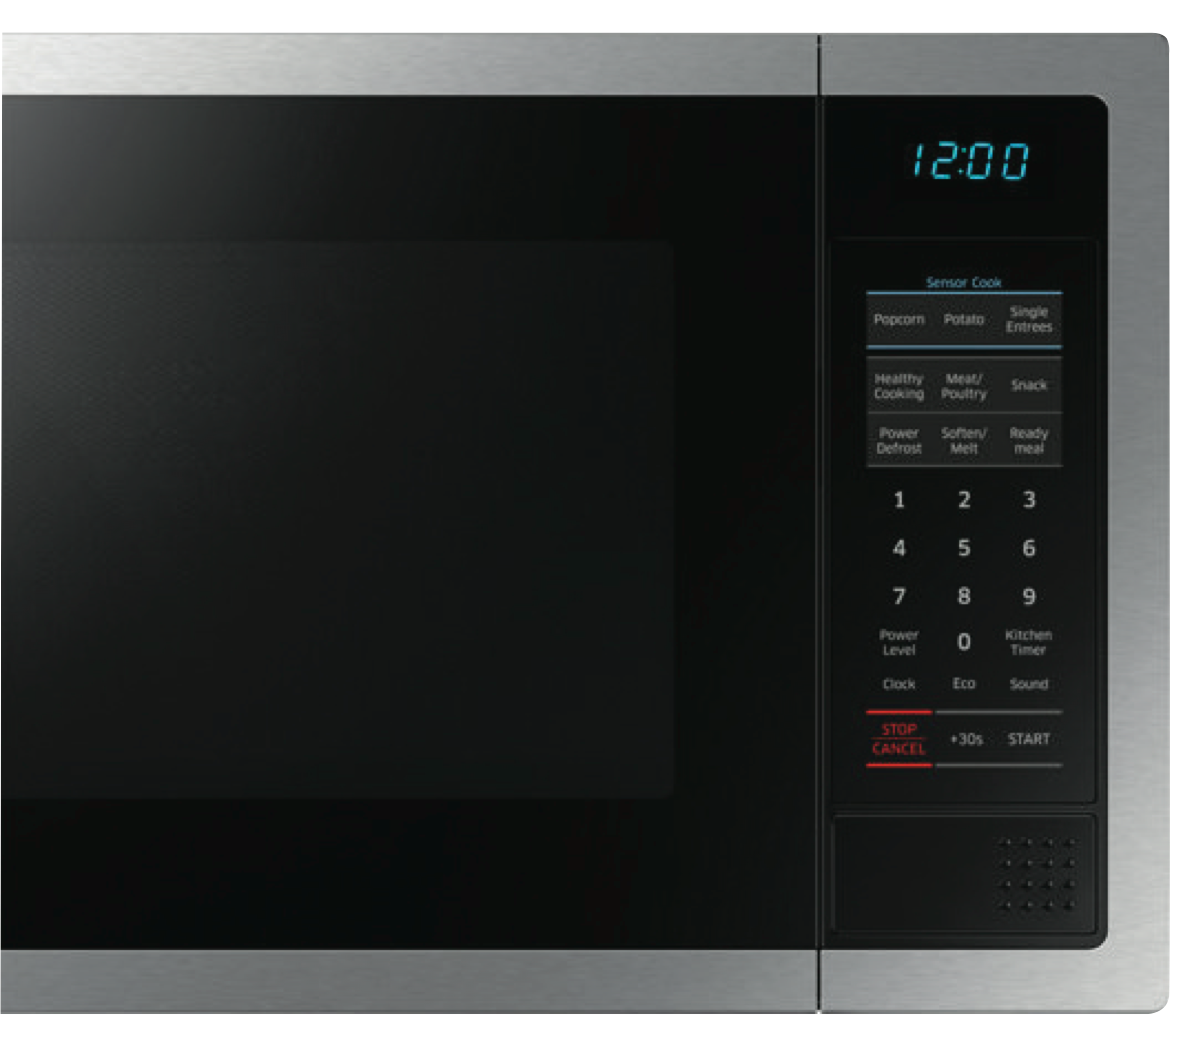 Samsung Me6124st 1 34l 1000w Stainless Steel Microwave At